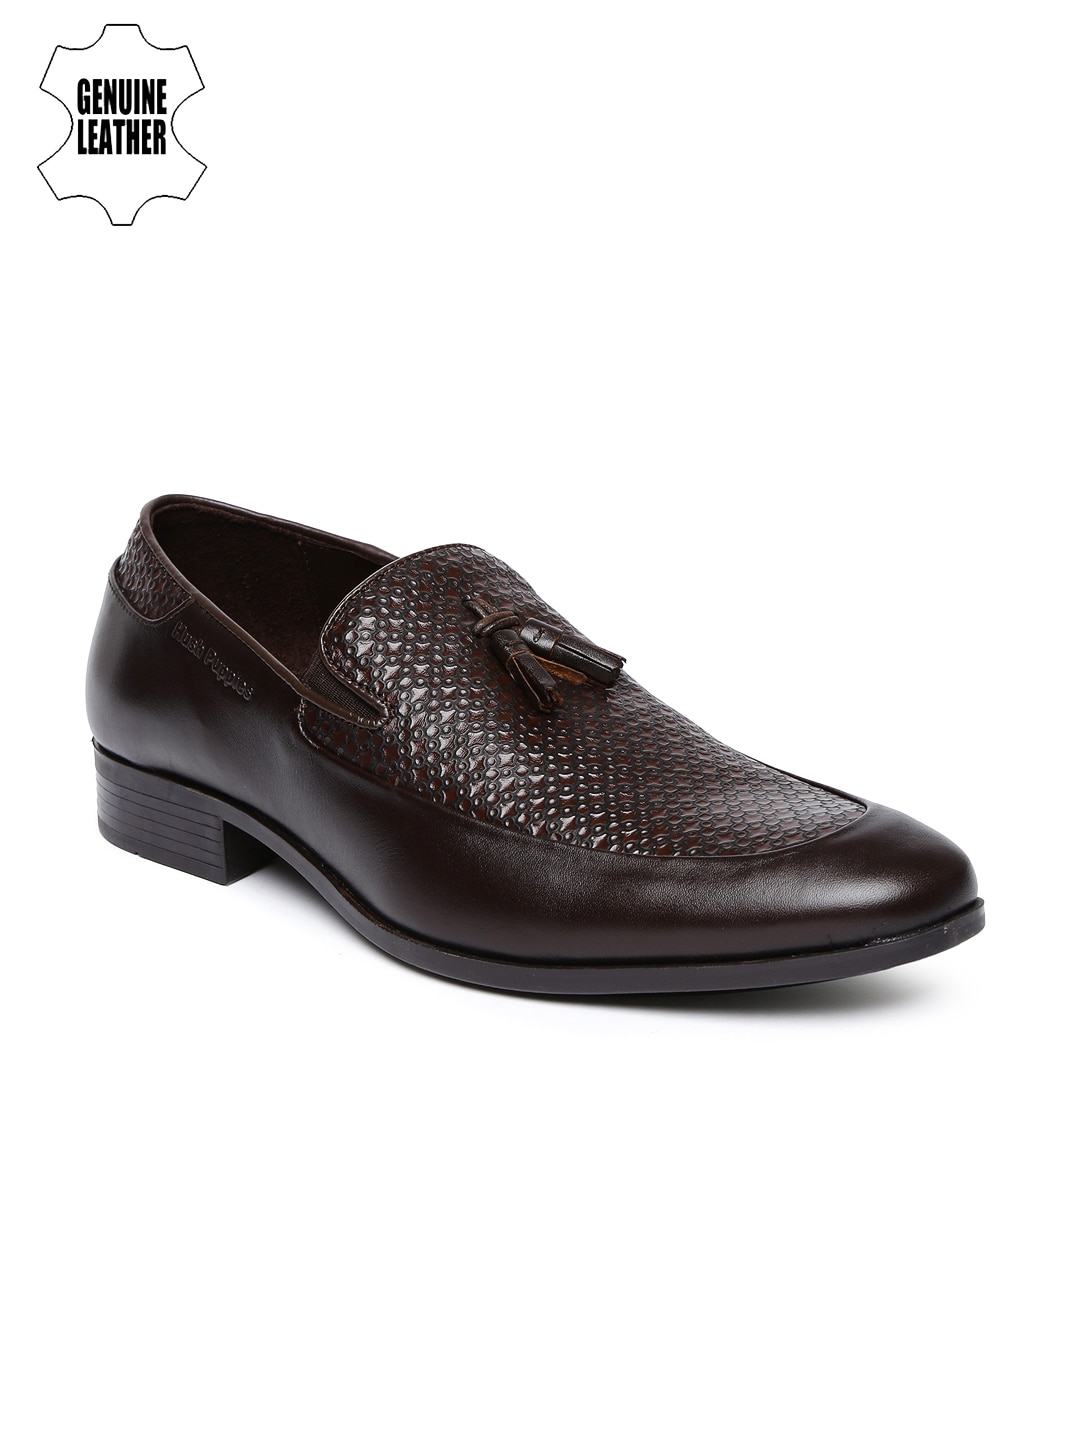 Hush Puppies Shoes Formal Casual Belts - Buy Hush Puppies Shoes Formal  Casual Belts online in India a6860be26a